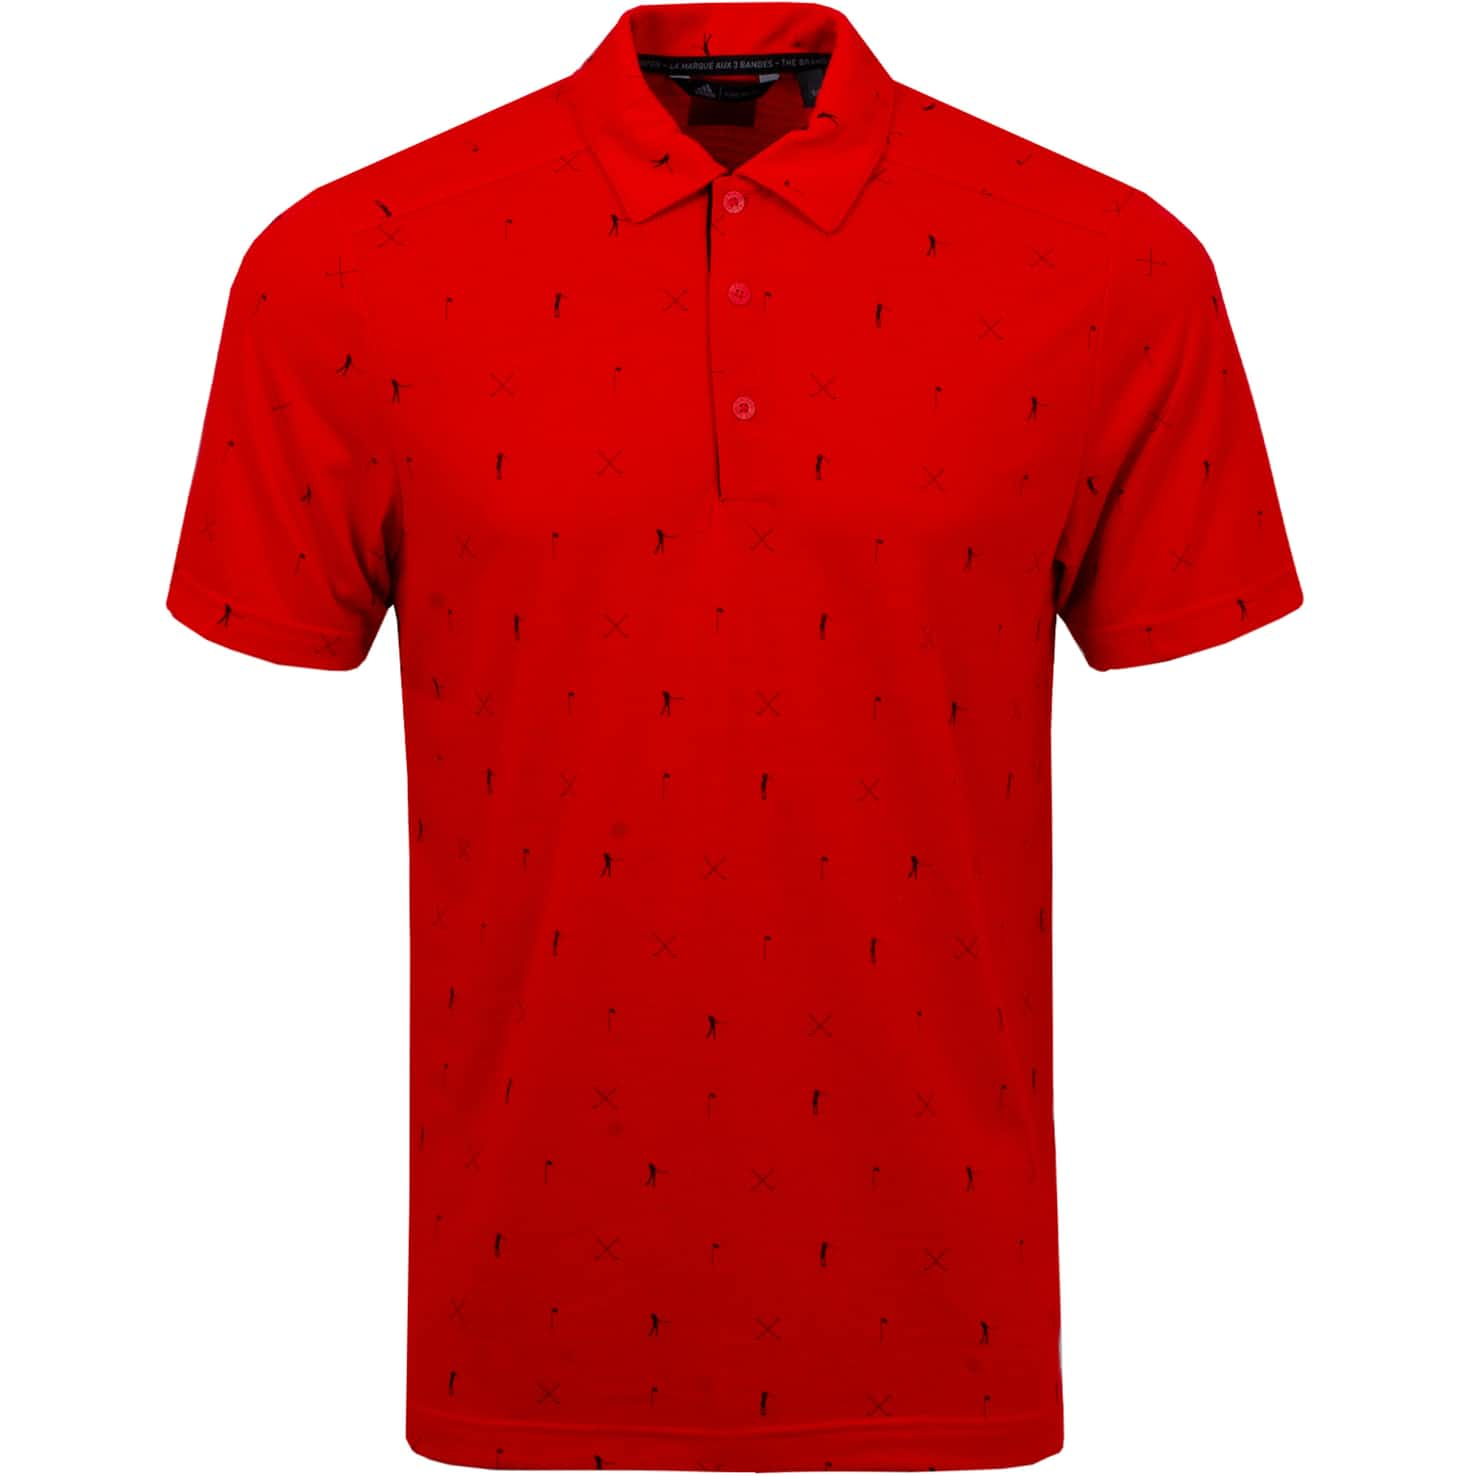 Adicross Drive Polo Red - SS20